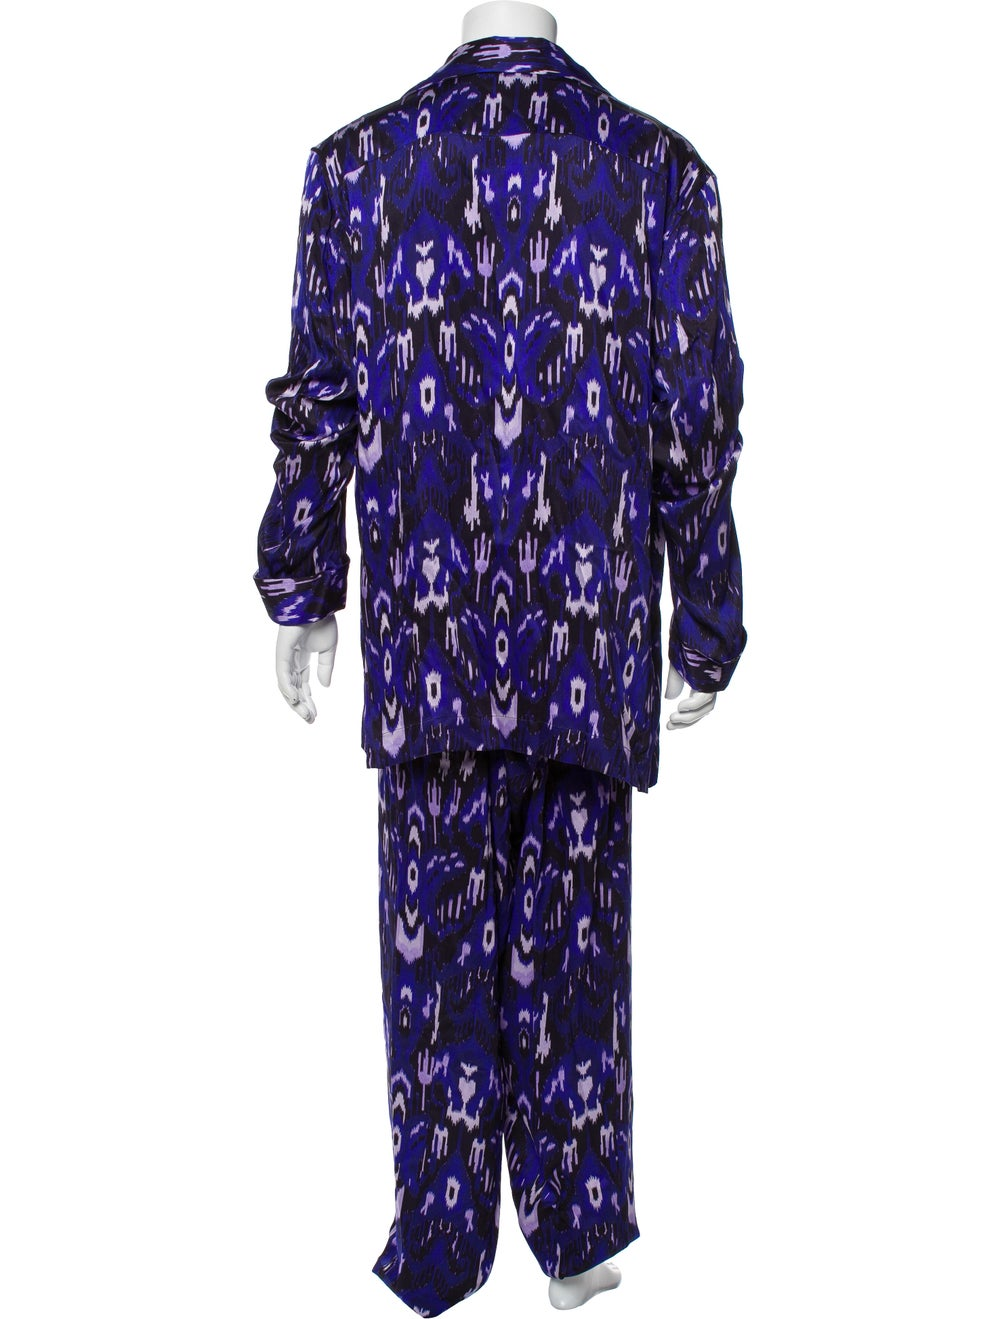 Tom Ford Silk Graphic Print Pajama Set Purple - image 3